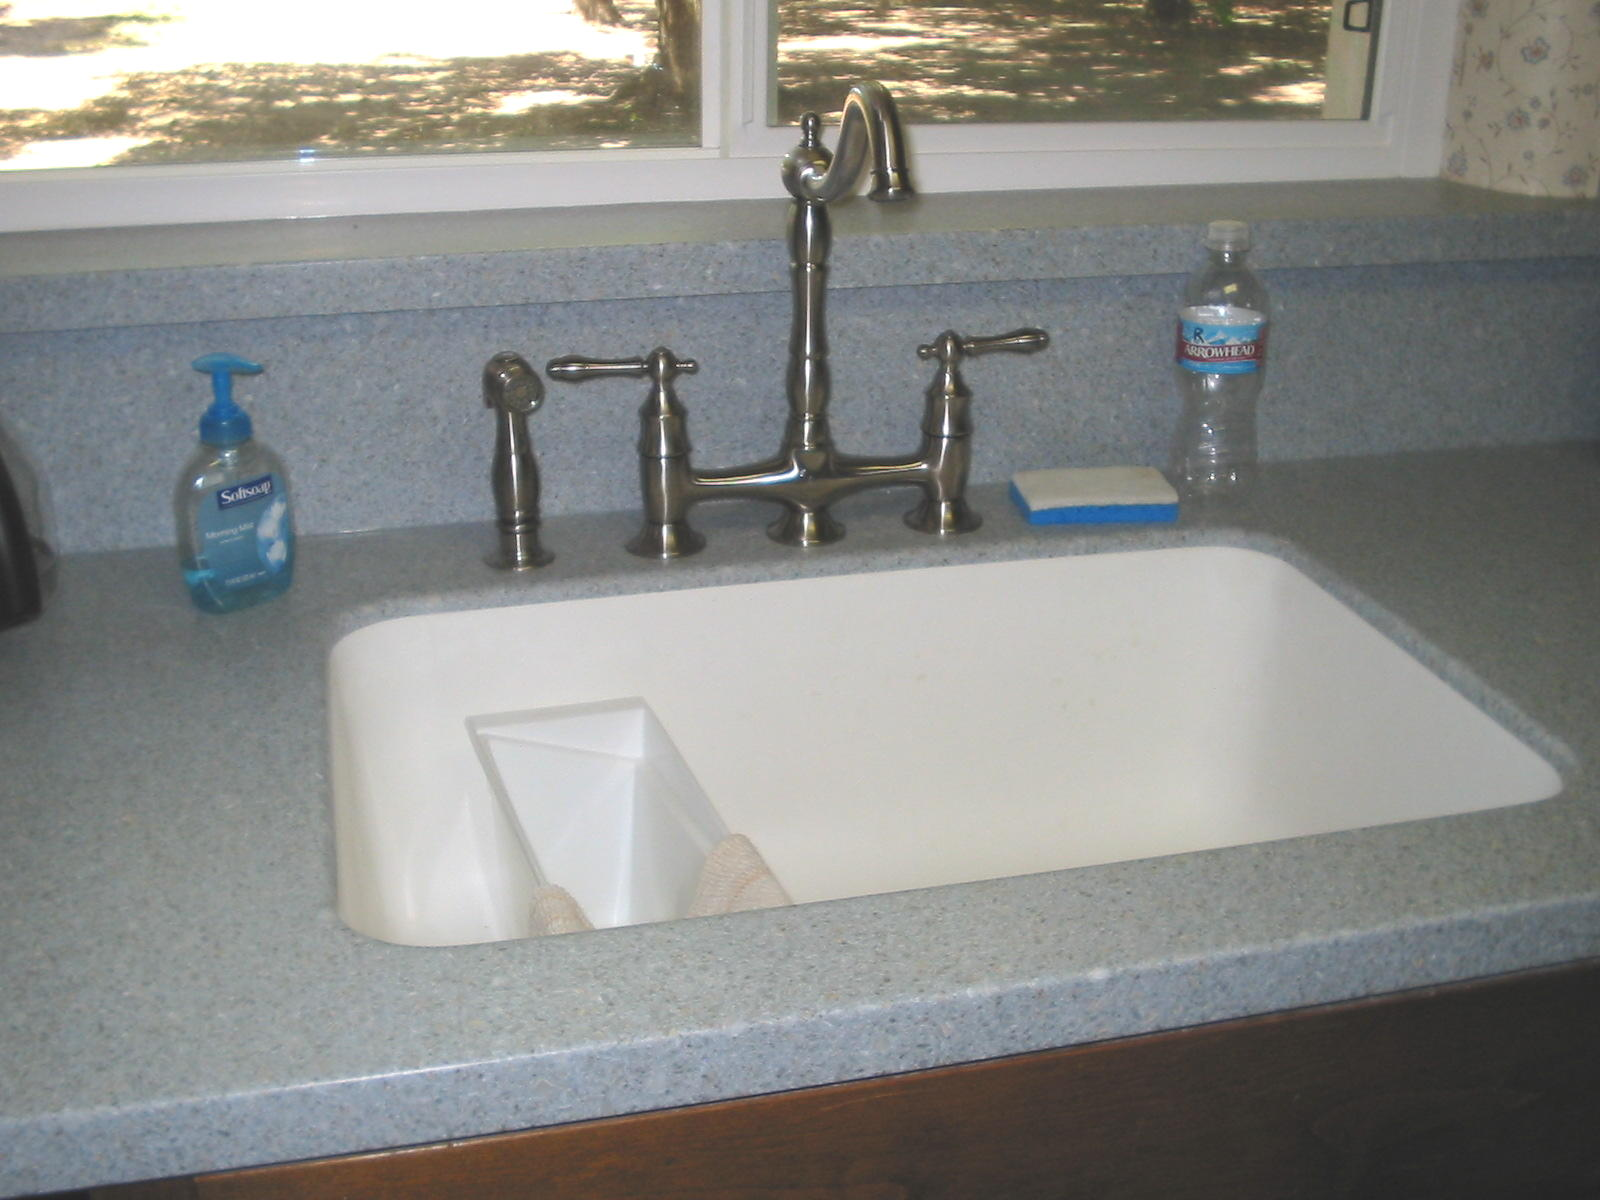 kitchen countertop with integrally mounted solid surface sink